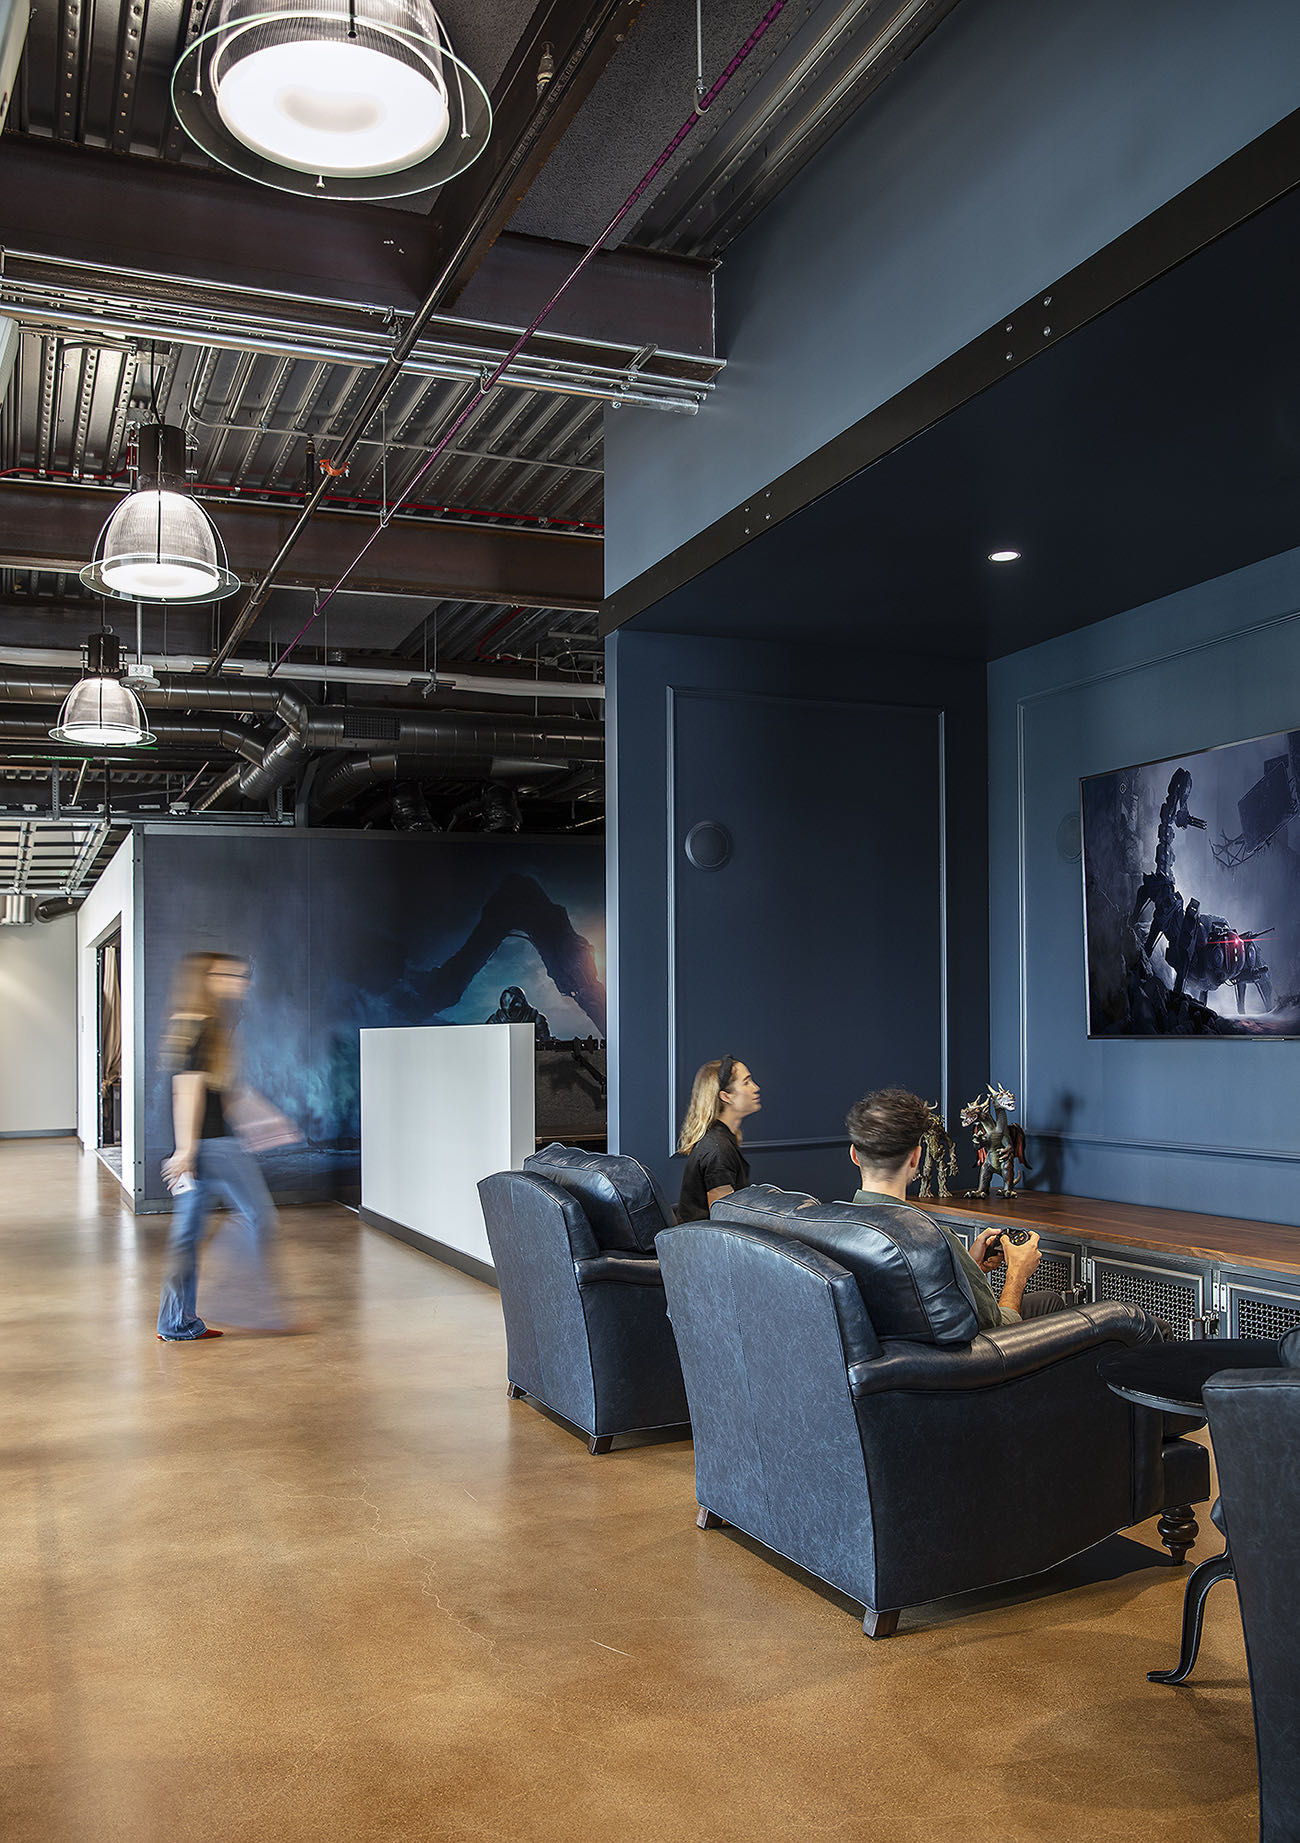 videogaming-company-office-11